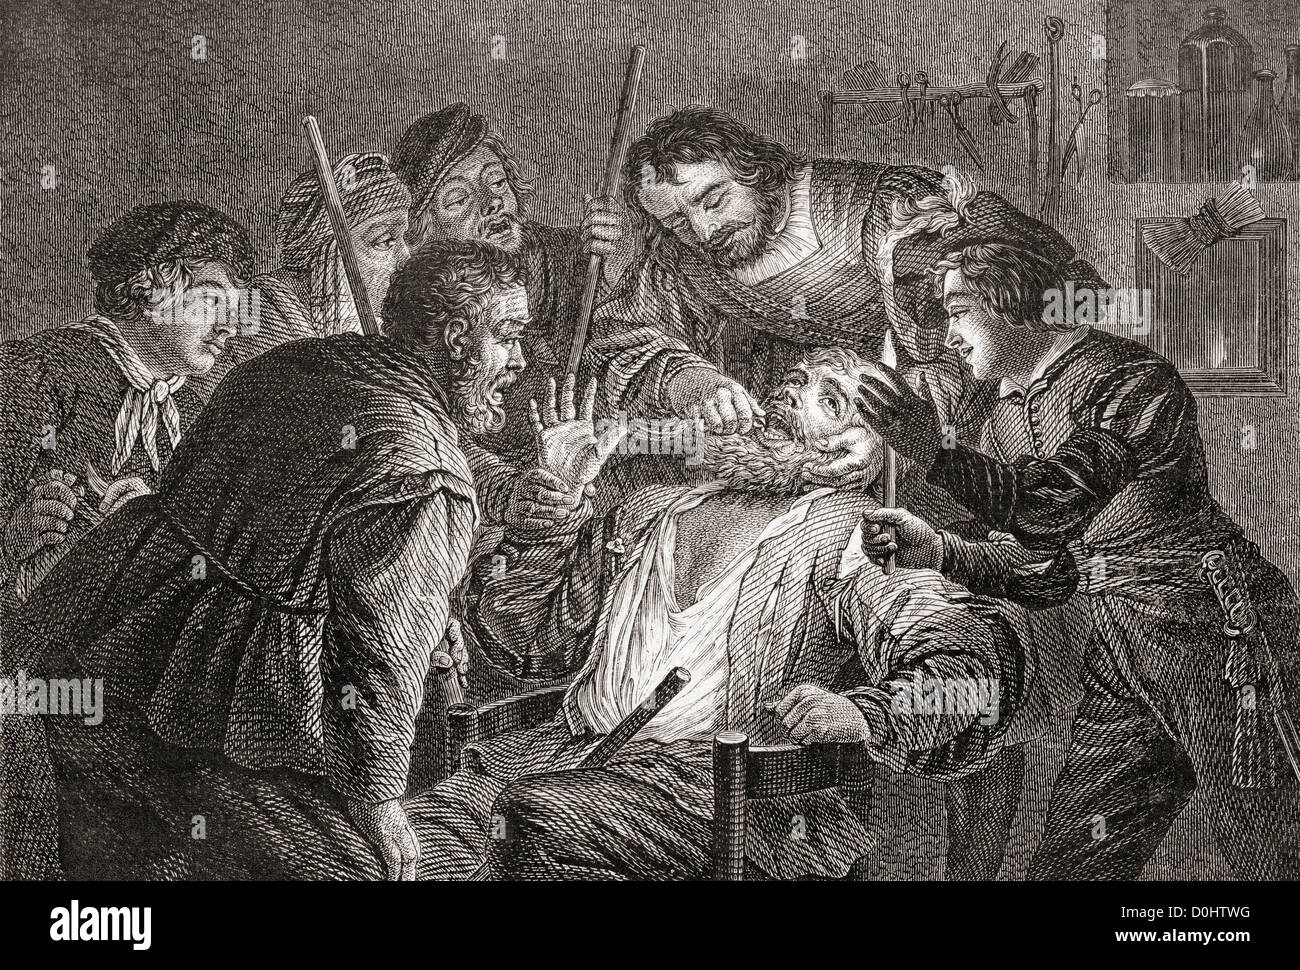 La Dentiste, The Dentist by Gerard van Honthorst.  Dentistry in the 17th century. - Stock Image